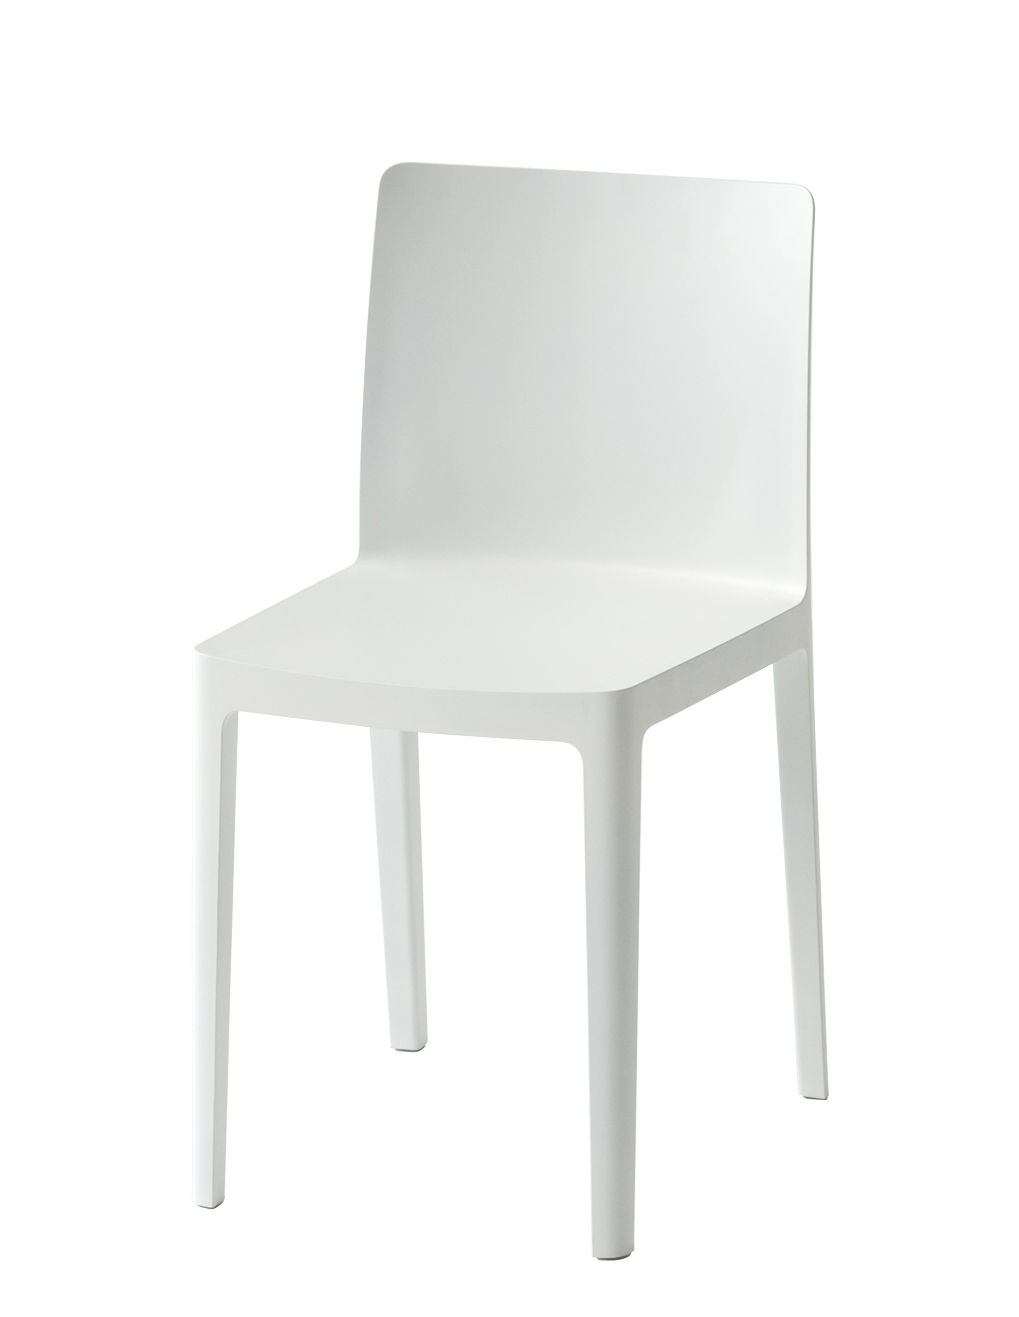 Furniture - Chairs - Elementaire Chair by Hay - Cream white - Fibreglass, Polypropylene